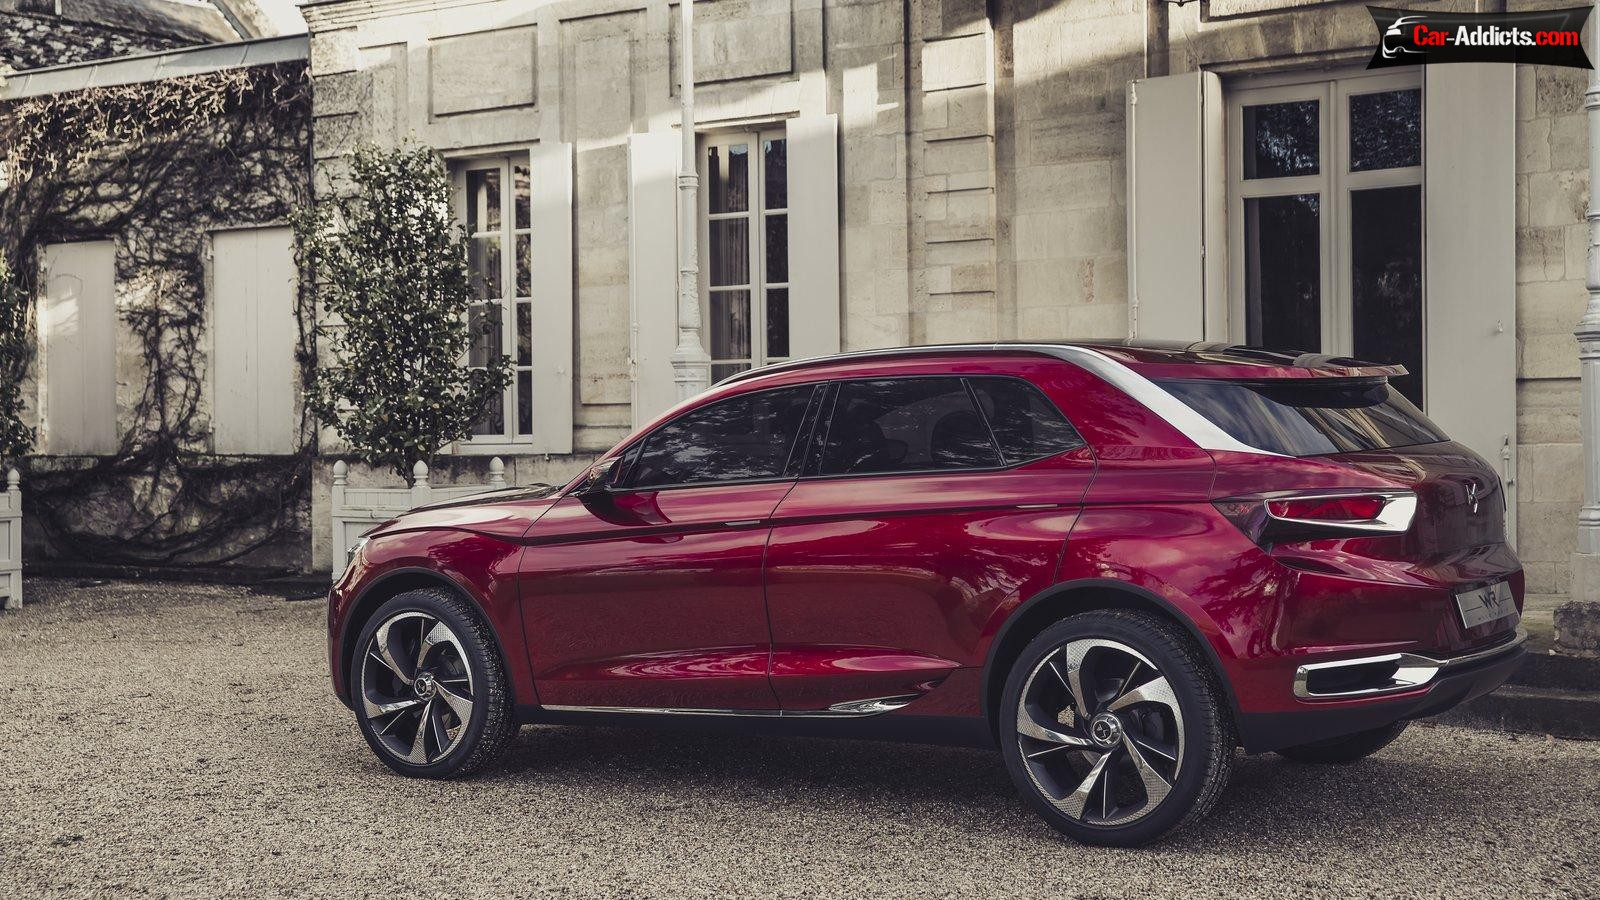 2019 Citroen DS Wild Rubis Concept photo - 1